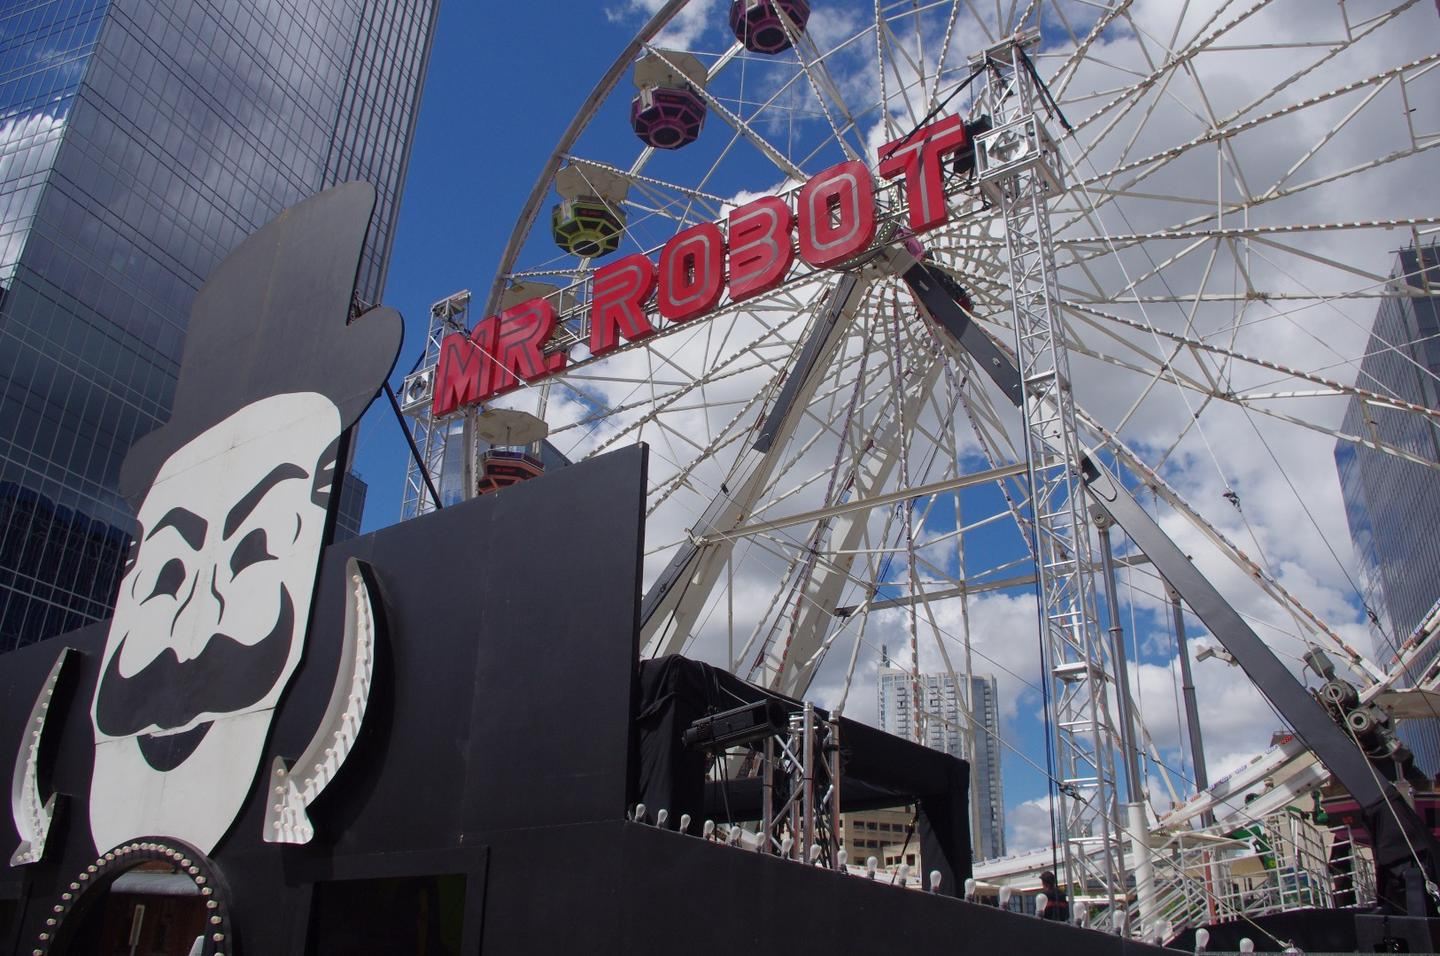 The Mr. Robot Ferris wheel by day at Austin's SXSW festival